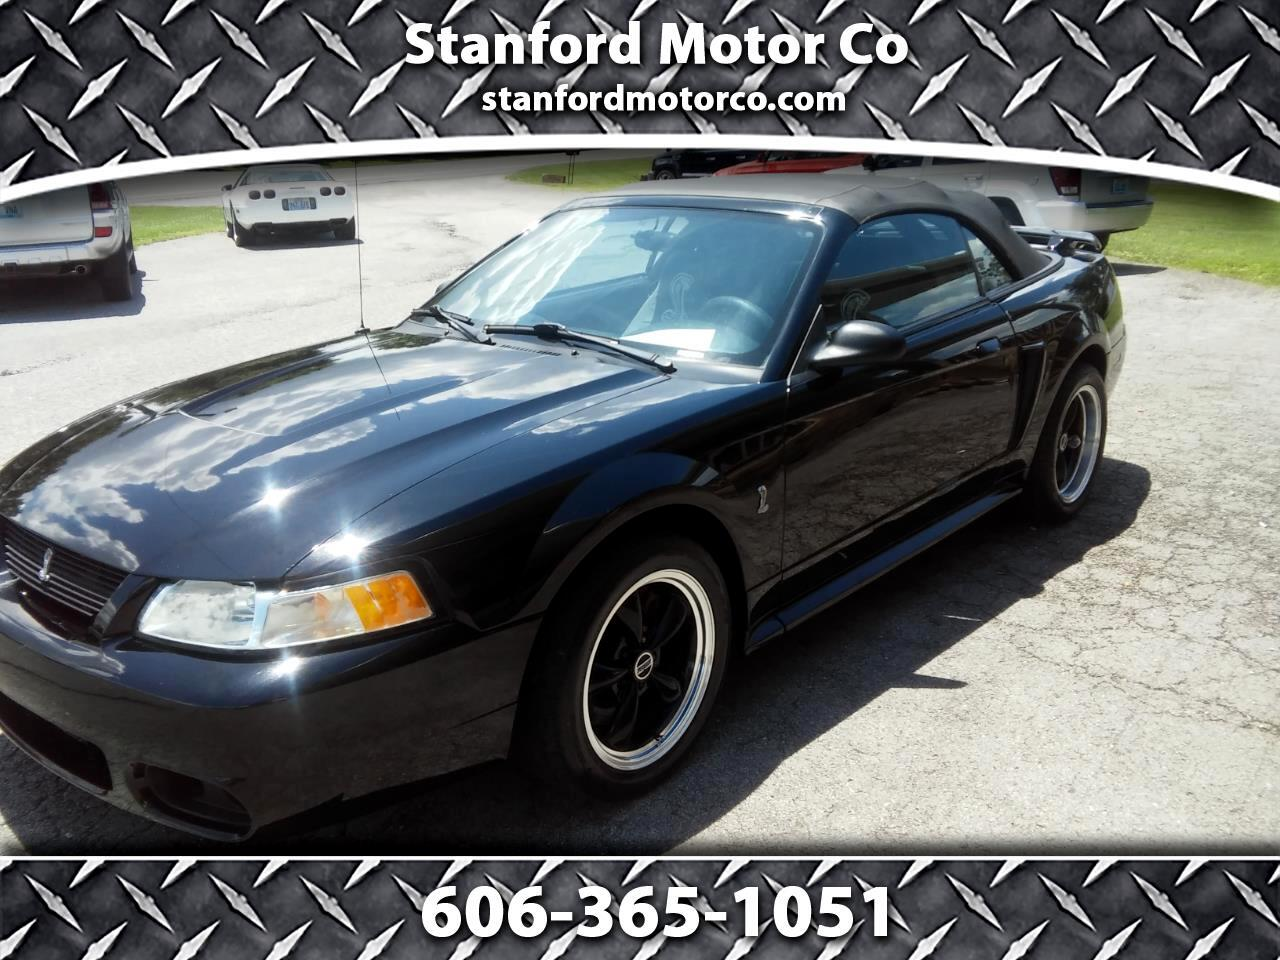 2001 Ford Mustang Cobra Convertible